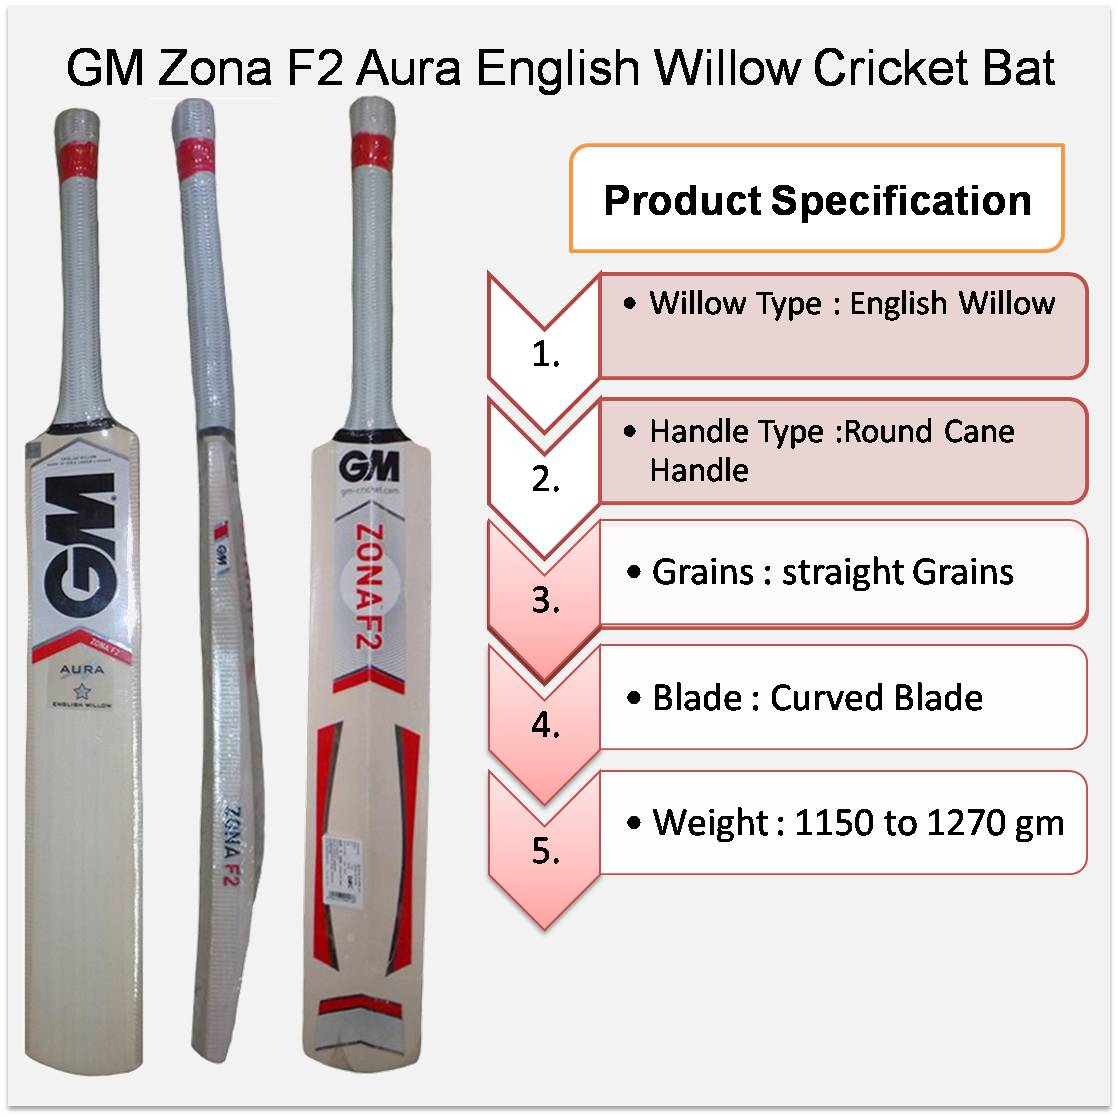 GM Zona F2 Aura English Willow Cricket Bat